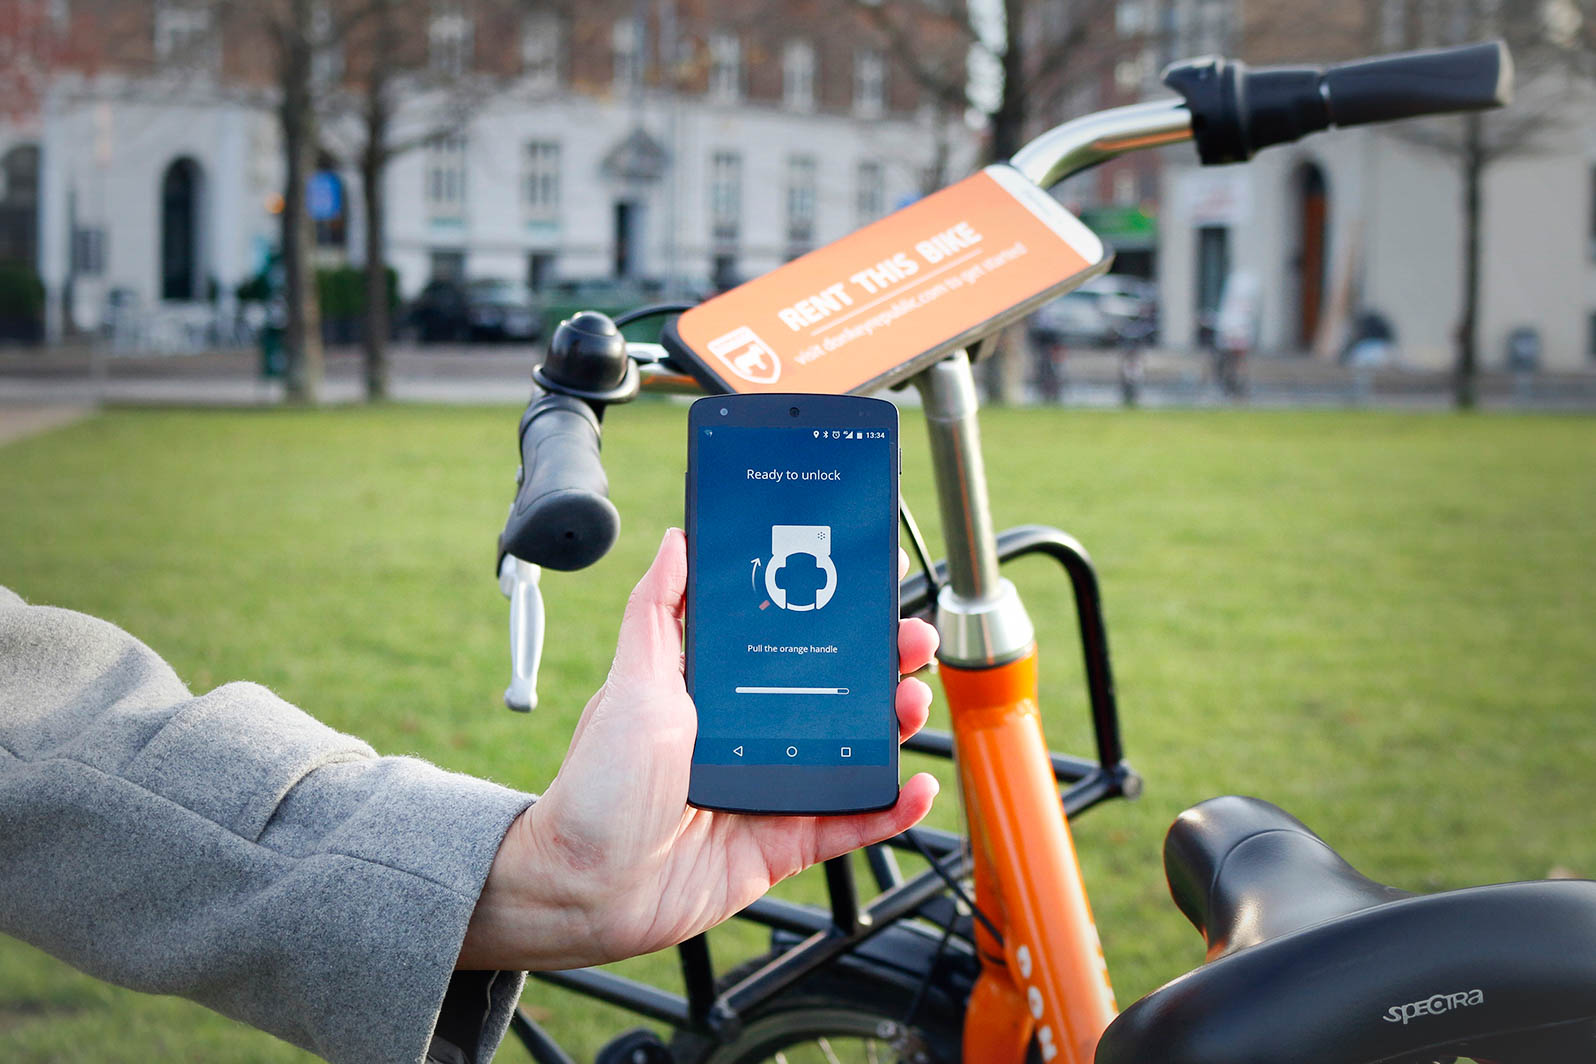 persons-hand-holding-a-phone-with-an-app-open-to-unlock-a-bike-with-an-orange-bike-in-a-park-in-the-background